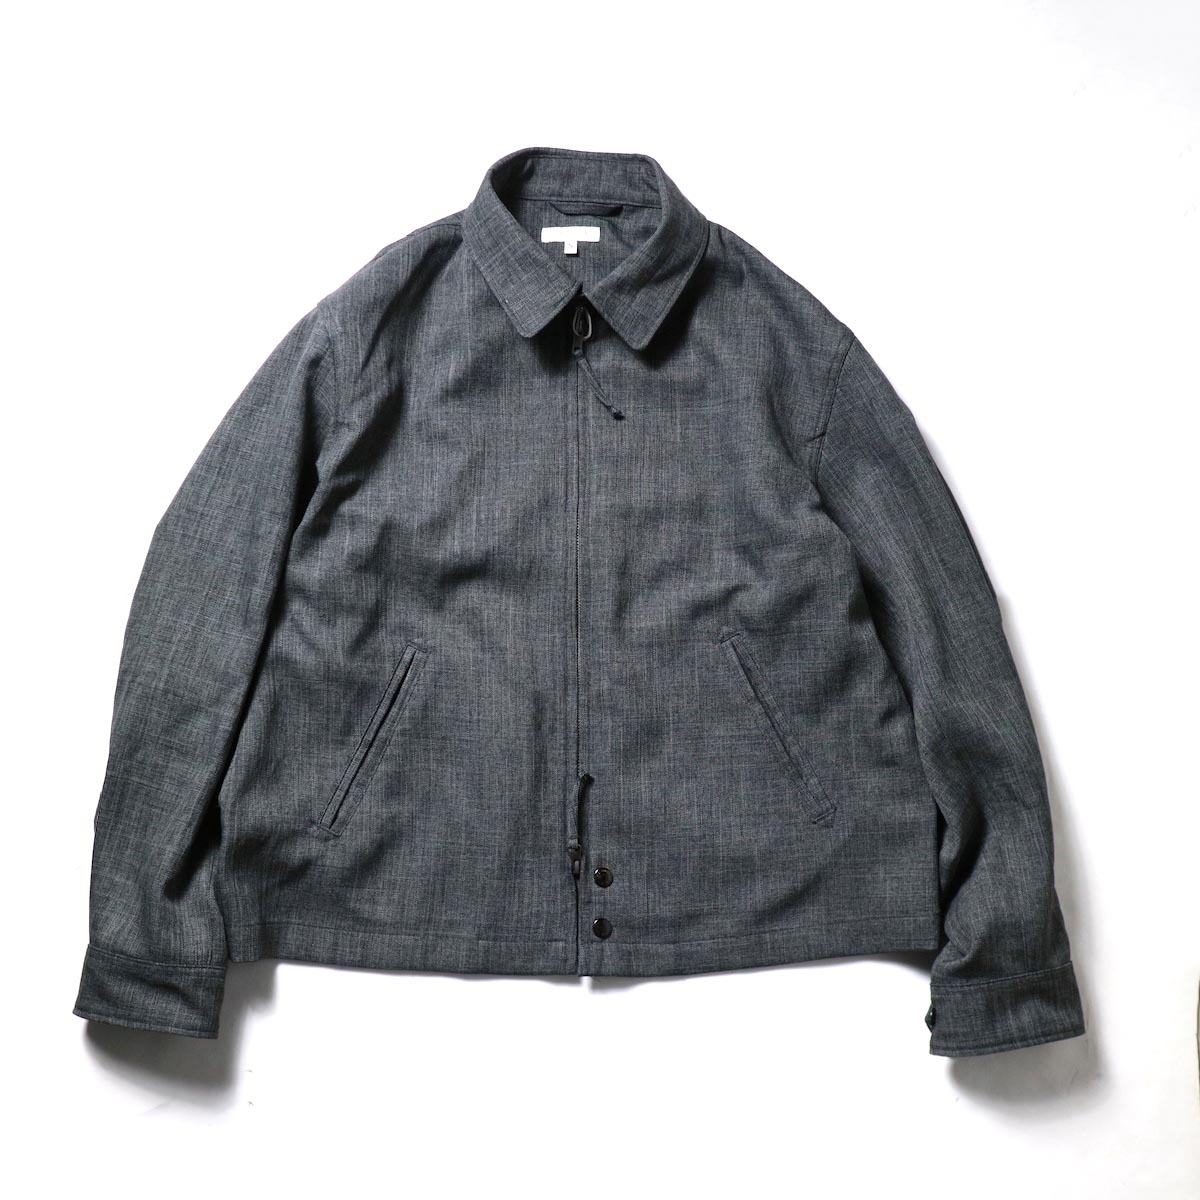 Engineered Garments / Claigton Jacket - Polyester Sharkskin (Charcoal)正面